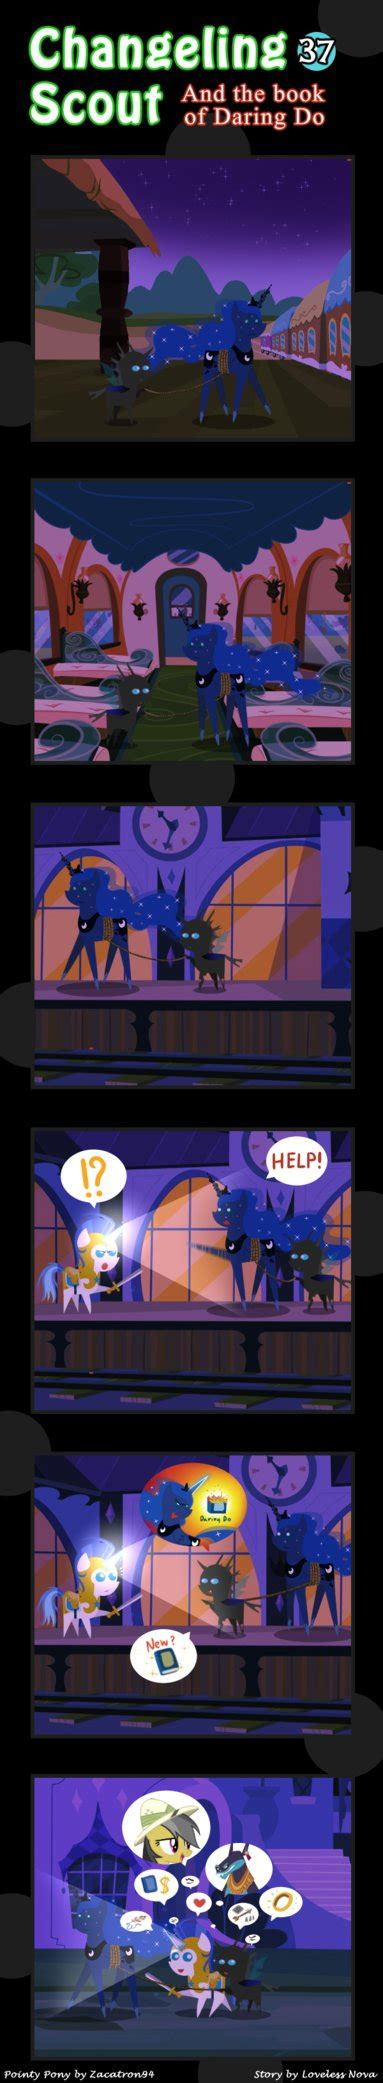 daring the candomble guard books changeling scout and the book of daring do 37 by vavacung